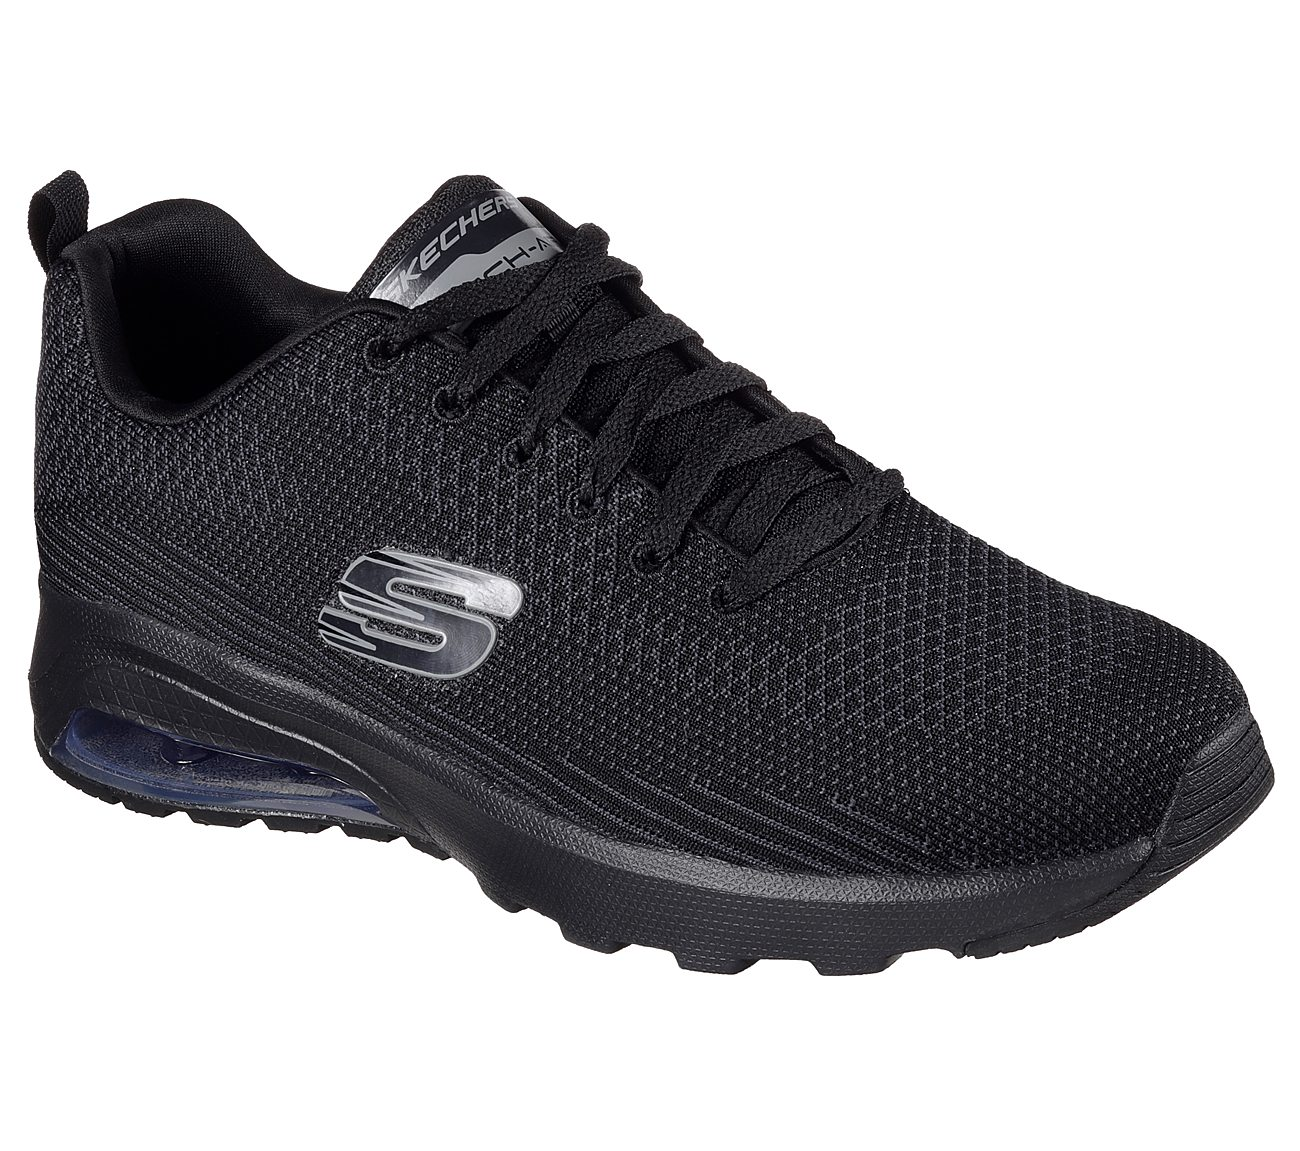 skechers air cooled memory foam men